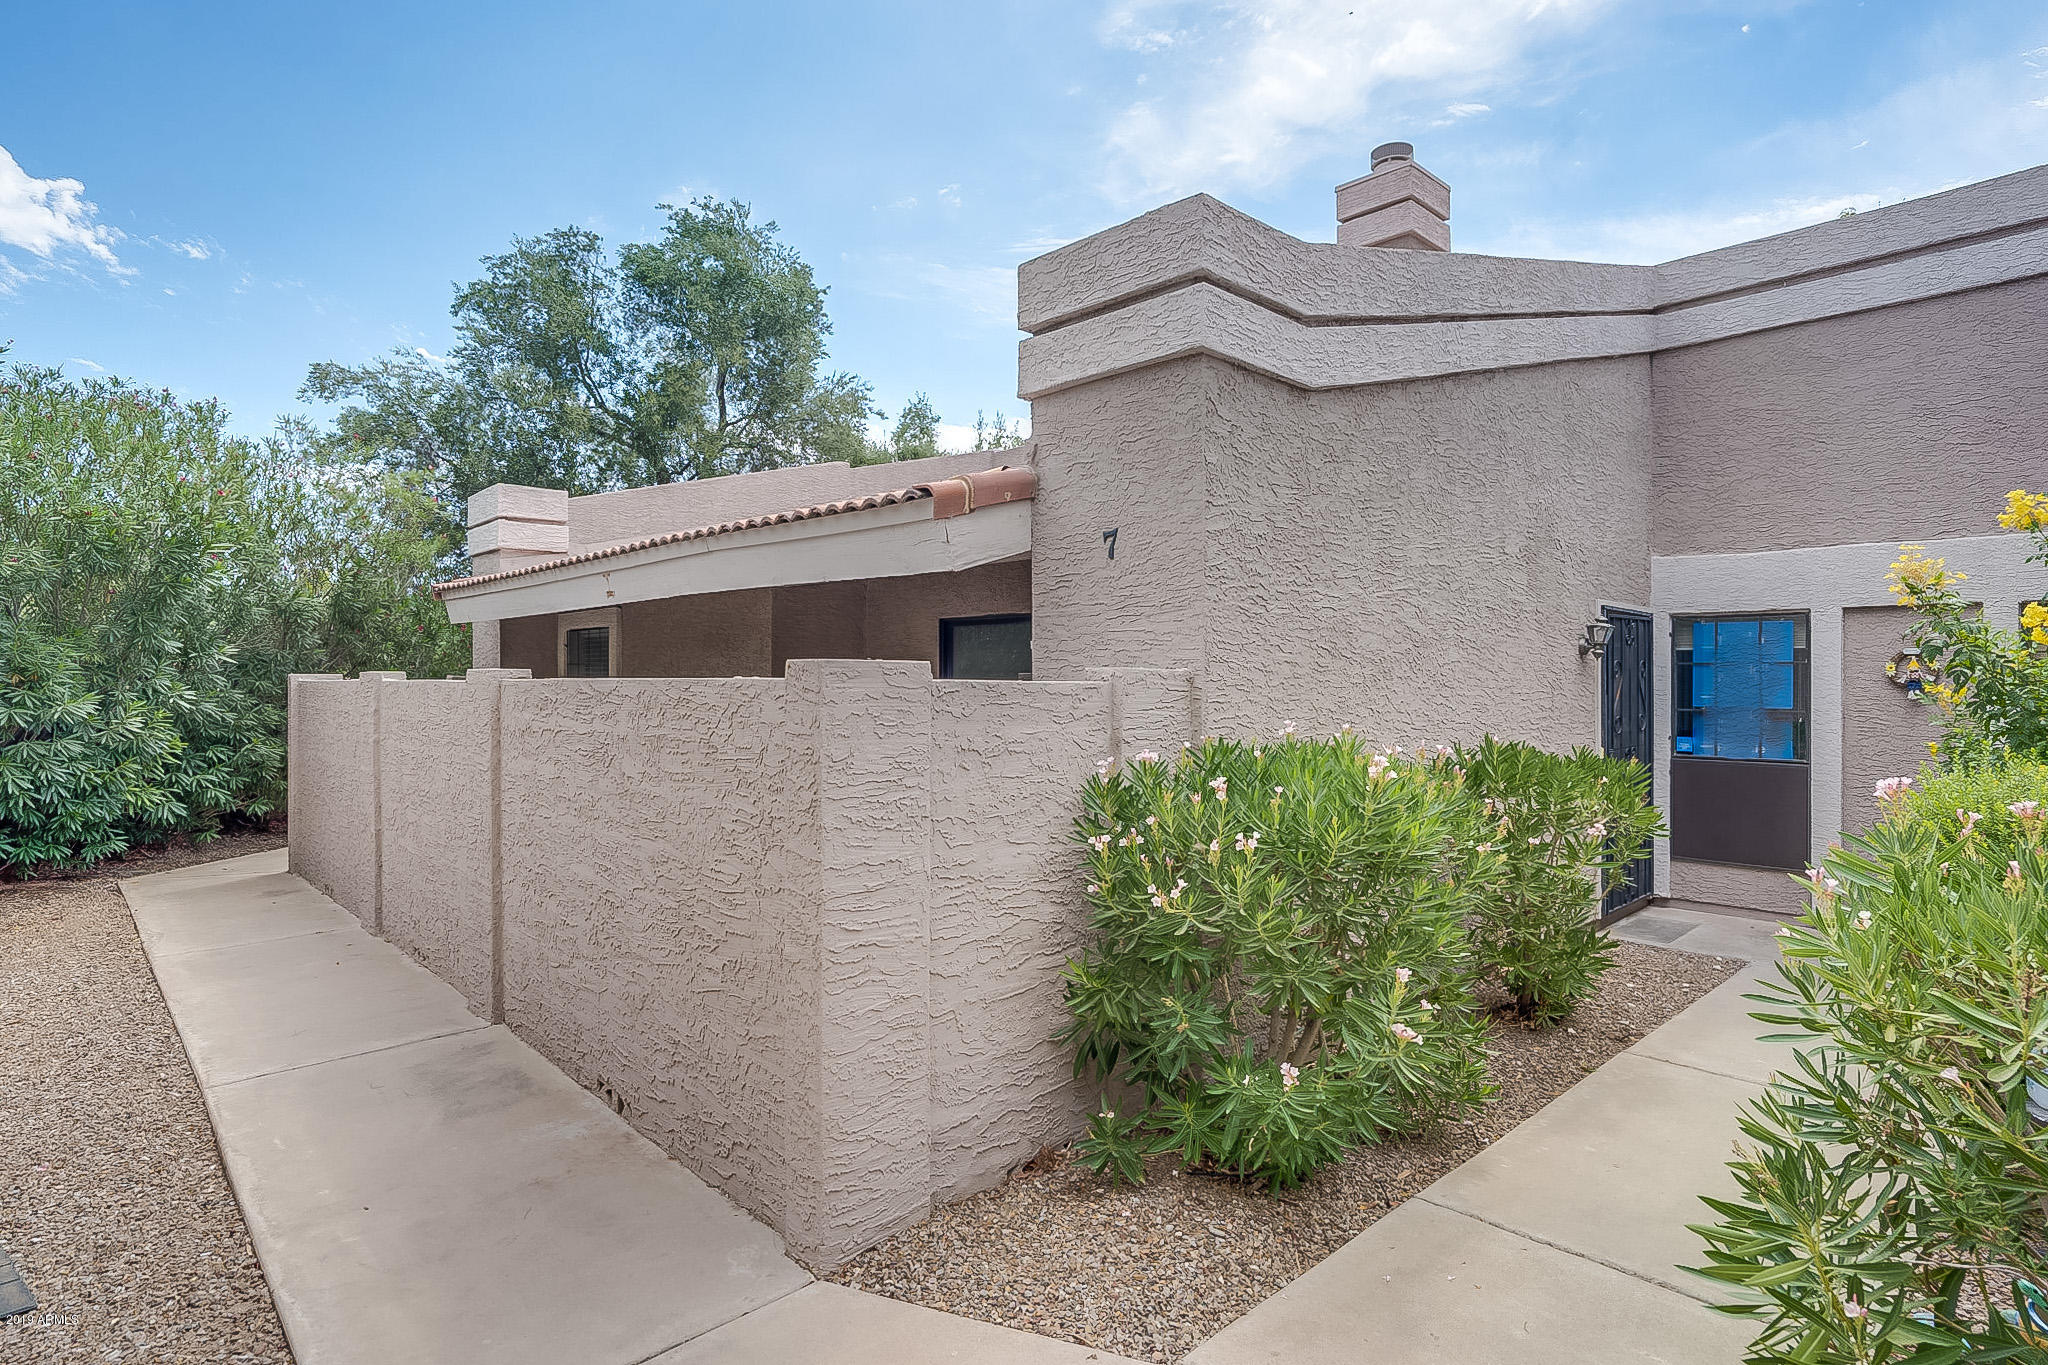 Photo of 1976 N LEMON TREE Lane #7, Chandler, AZ 85224